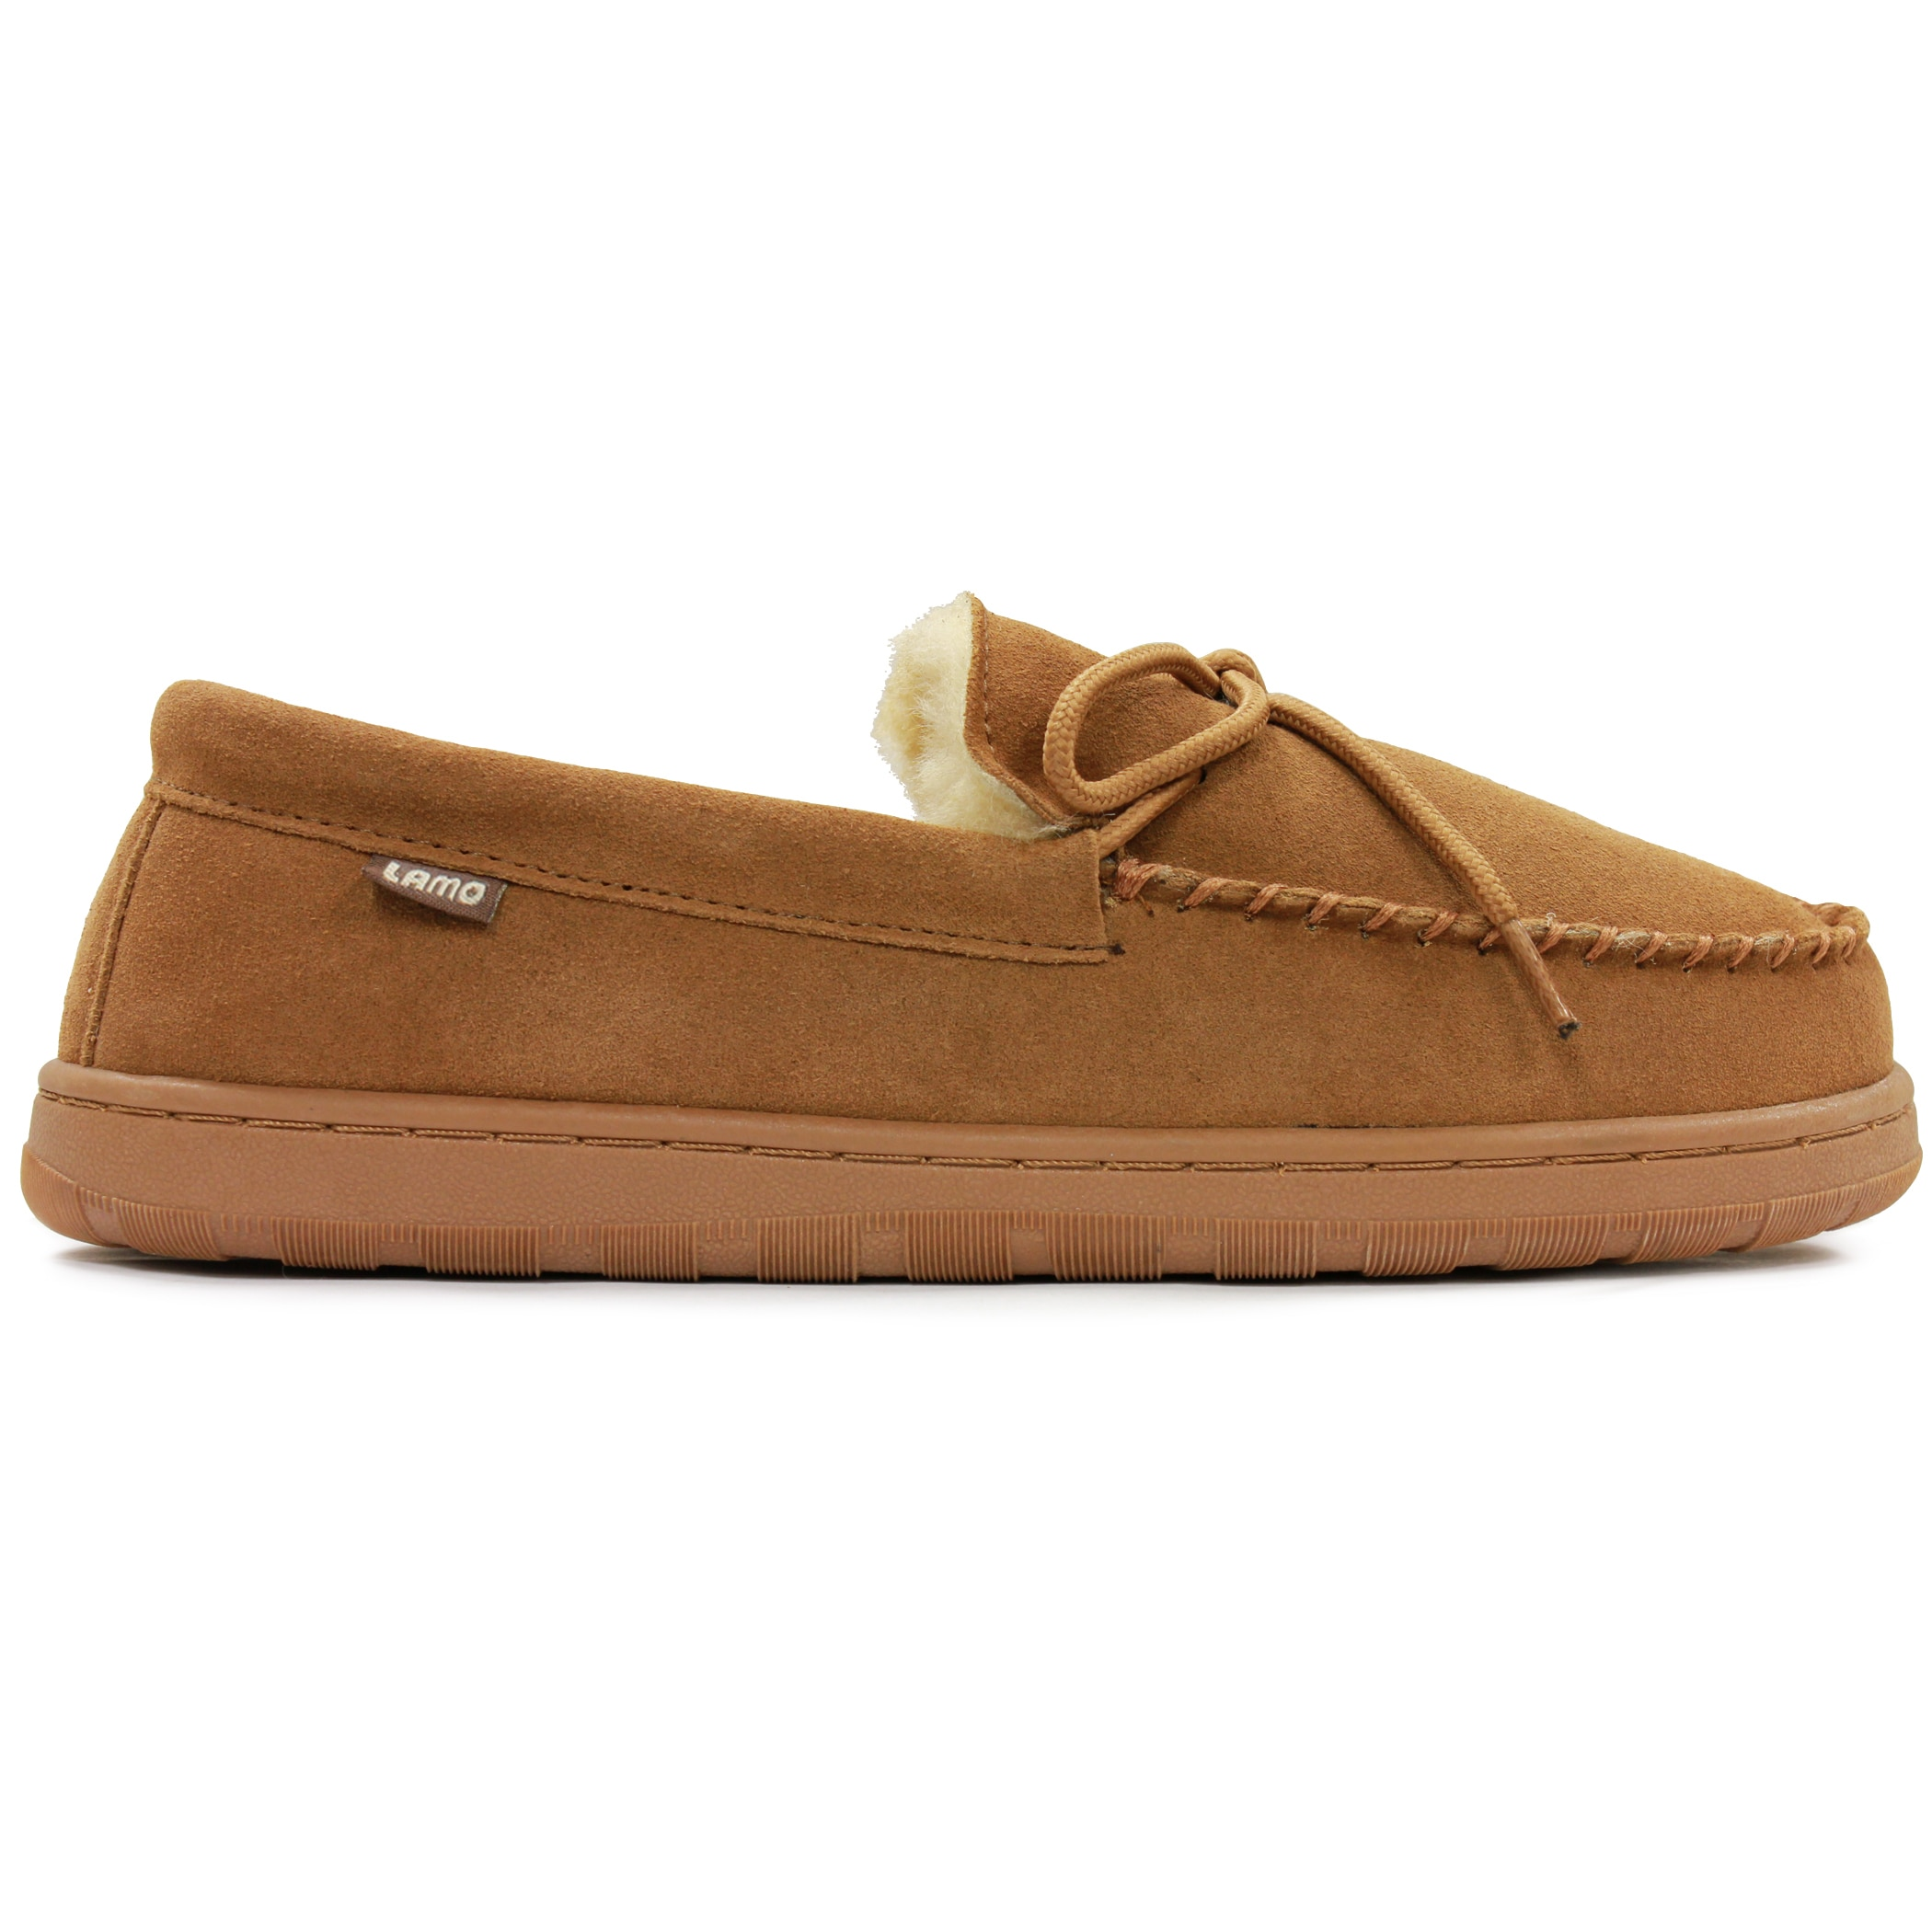 Lamo Men's Brown Sheepskin/Suede Moccasins with Rubber So...